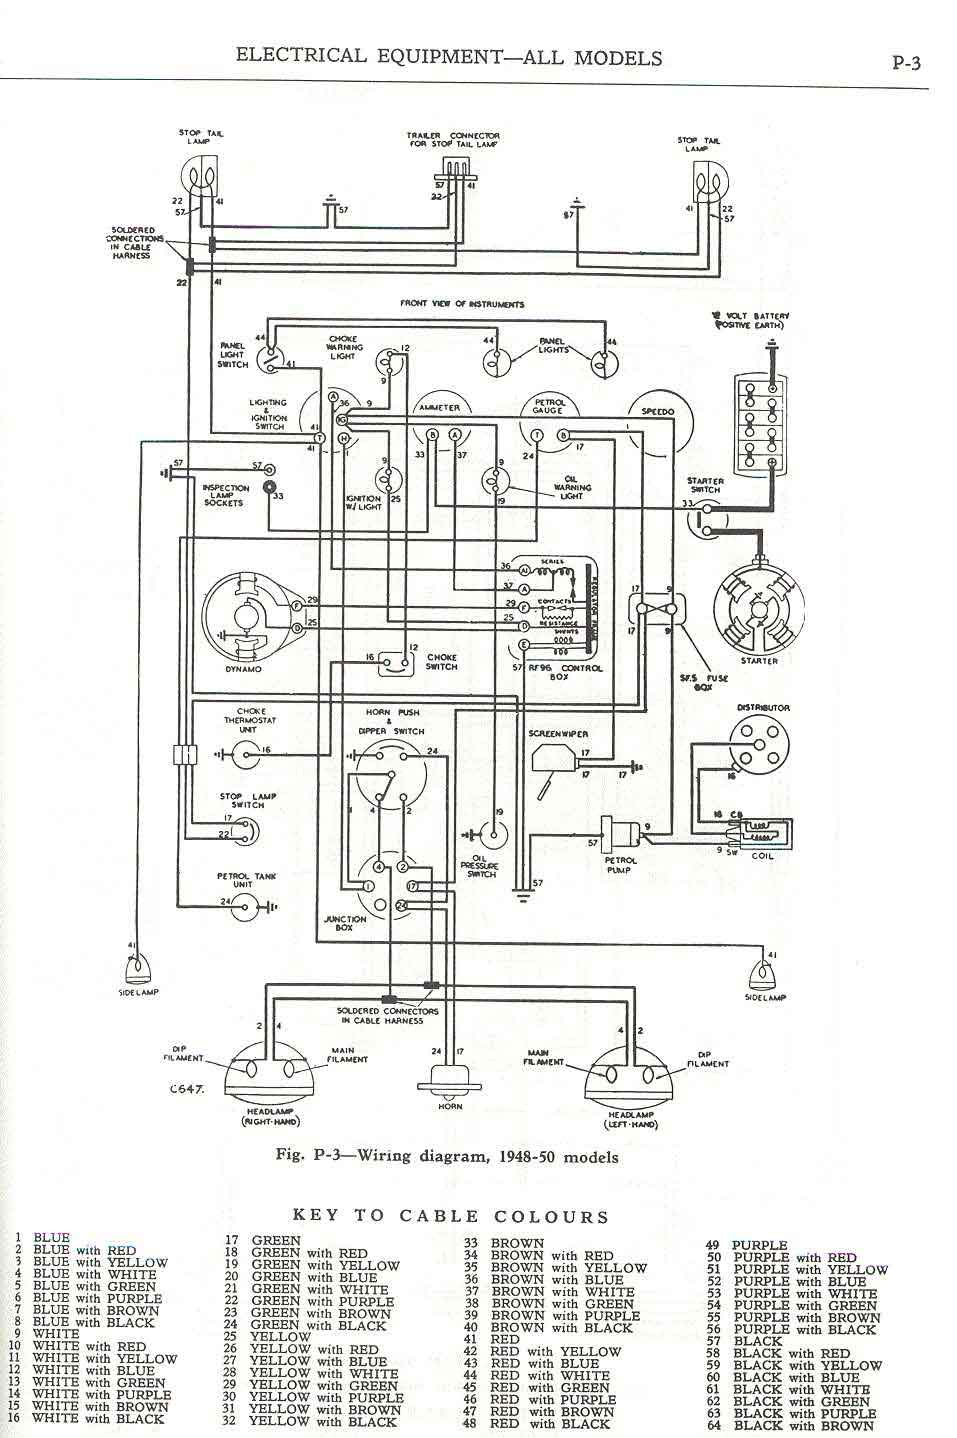 P3 land rover faq repair & maintenance series electrical rover 45 wiring diagram at gsmportal.co